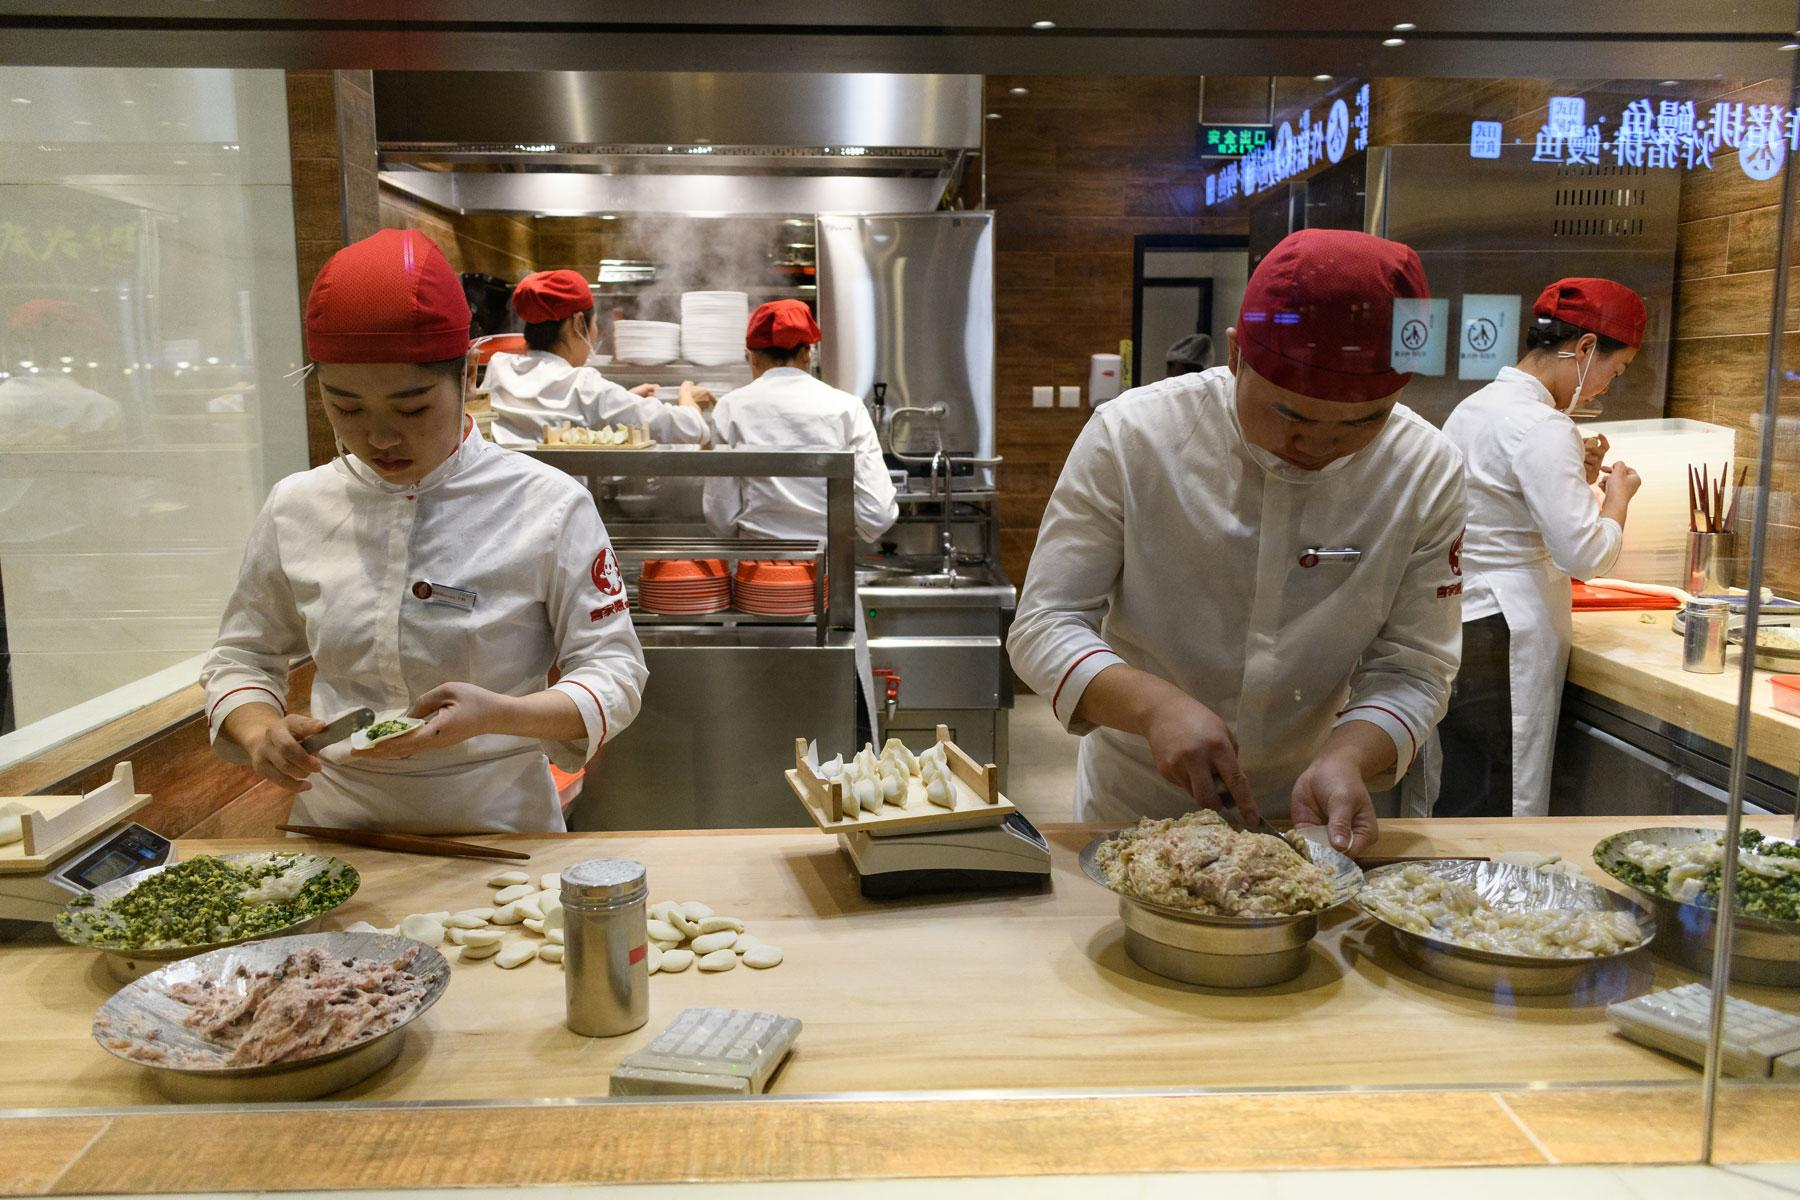 In this Beijing restaurant, chefs make dumplings in front of customers.